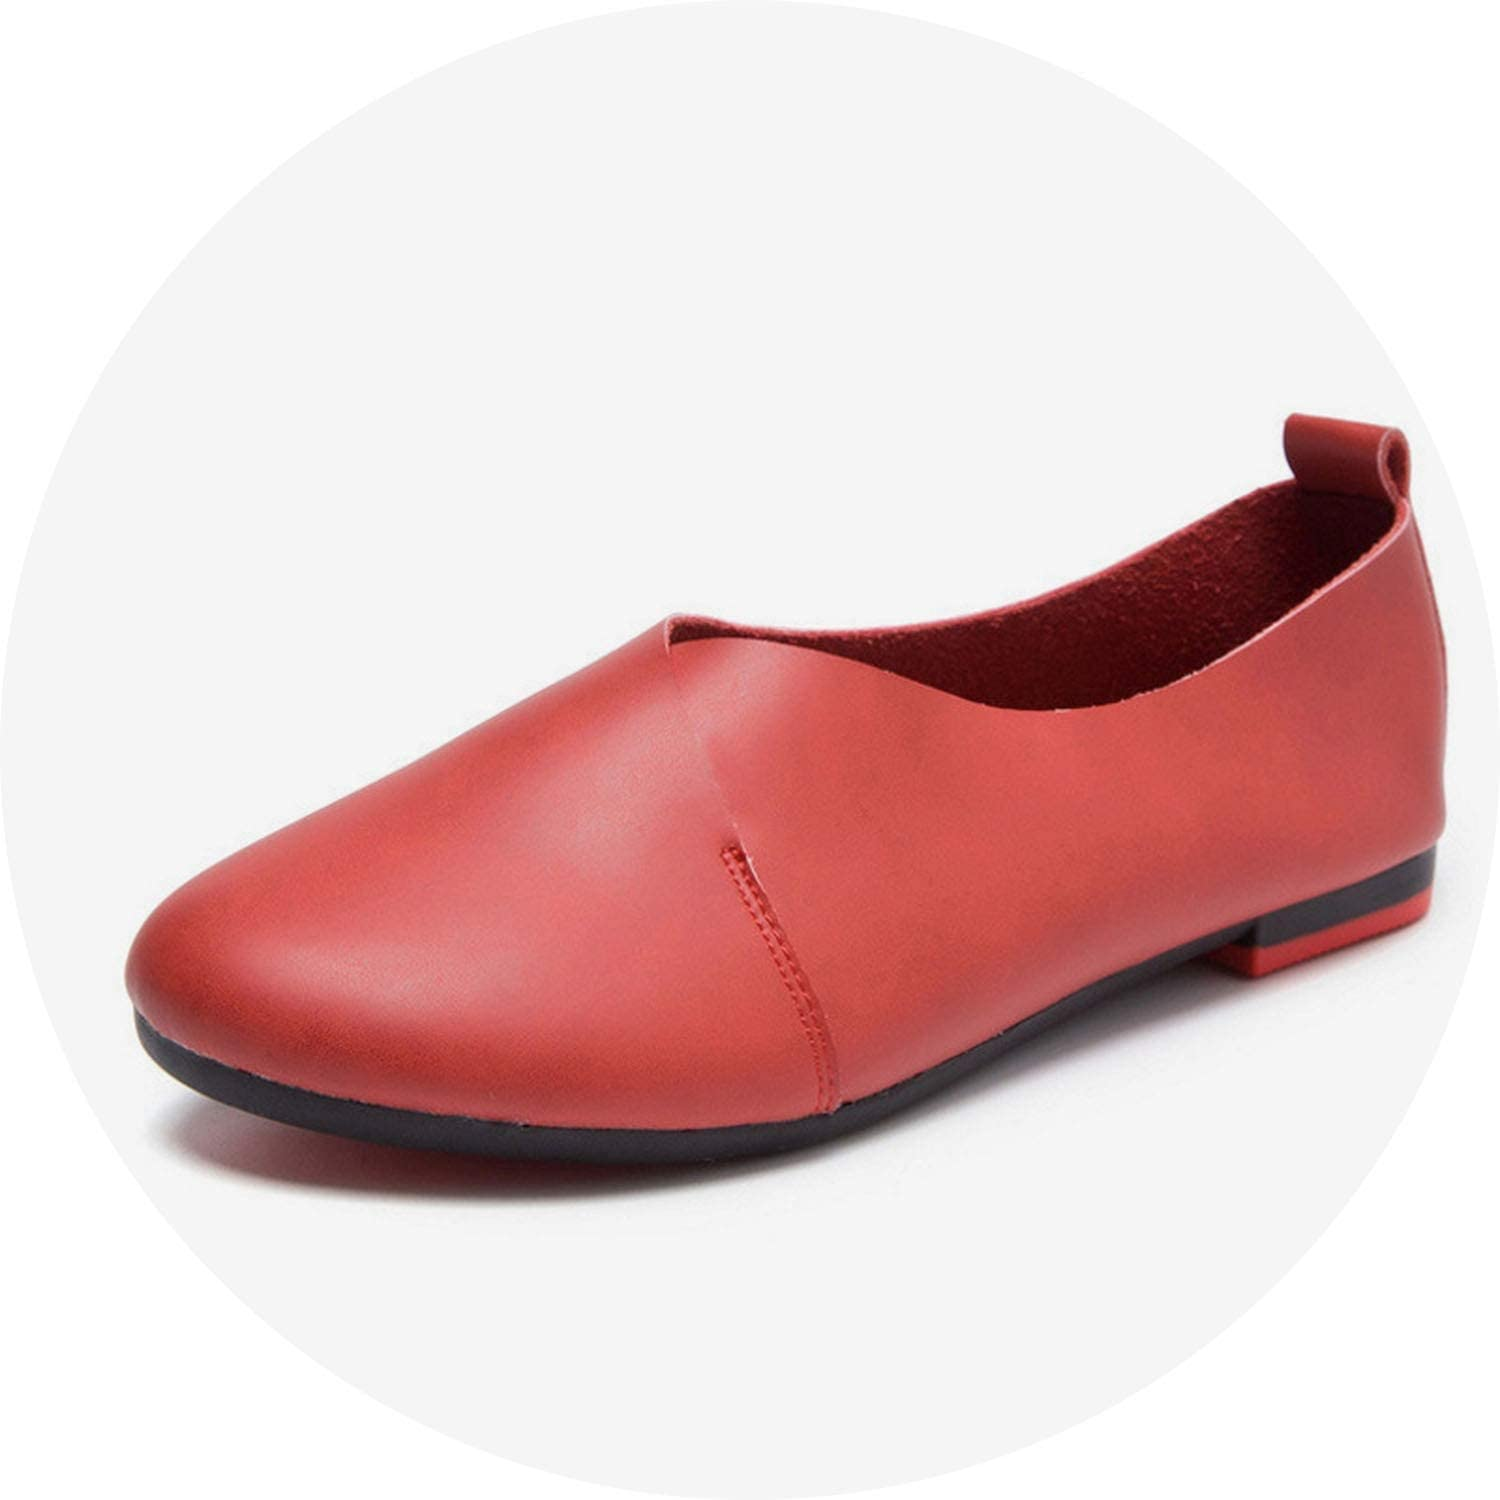 Ting room Autumn Loafers for Women Low Heel shoes Casual Platform Footwear Sewing Flats shoes